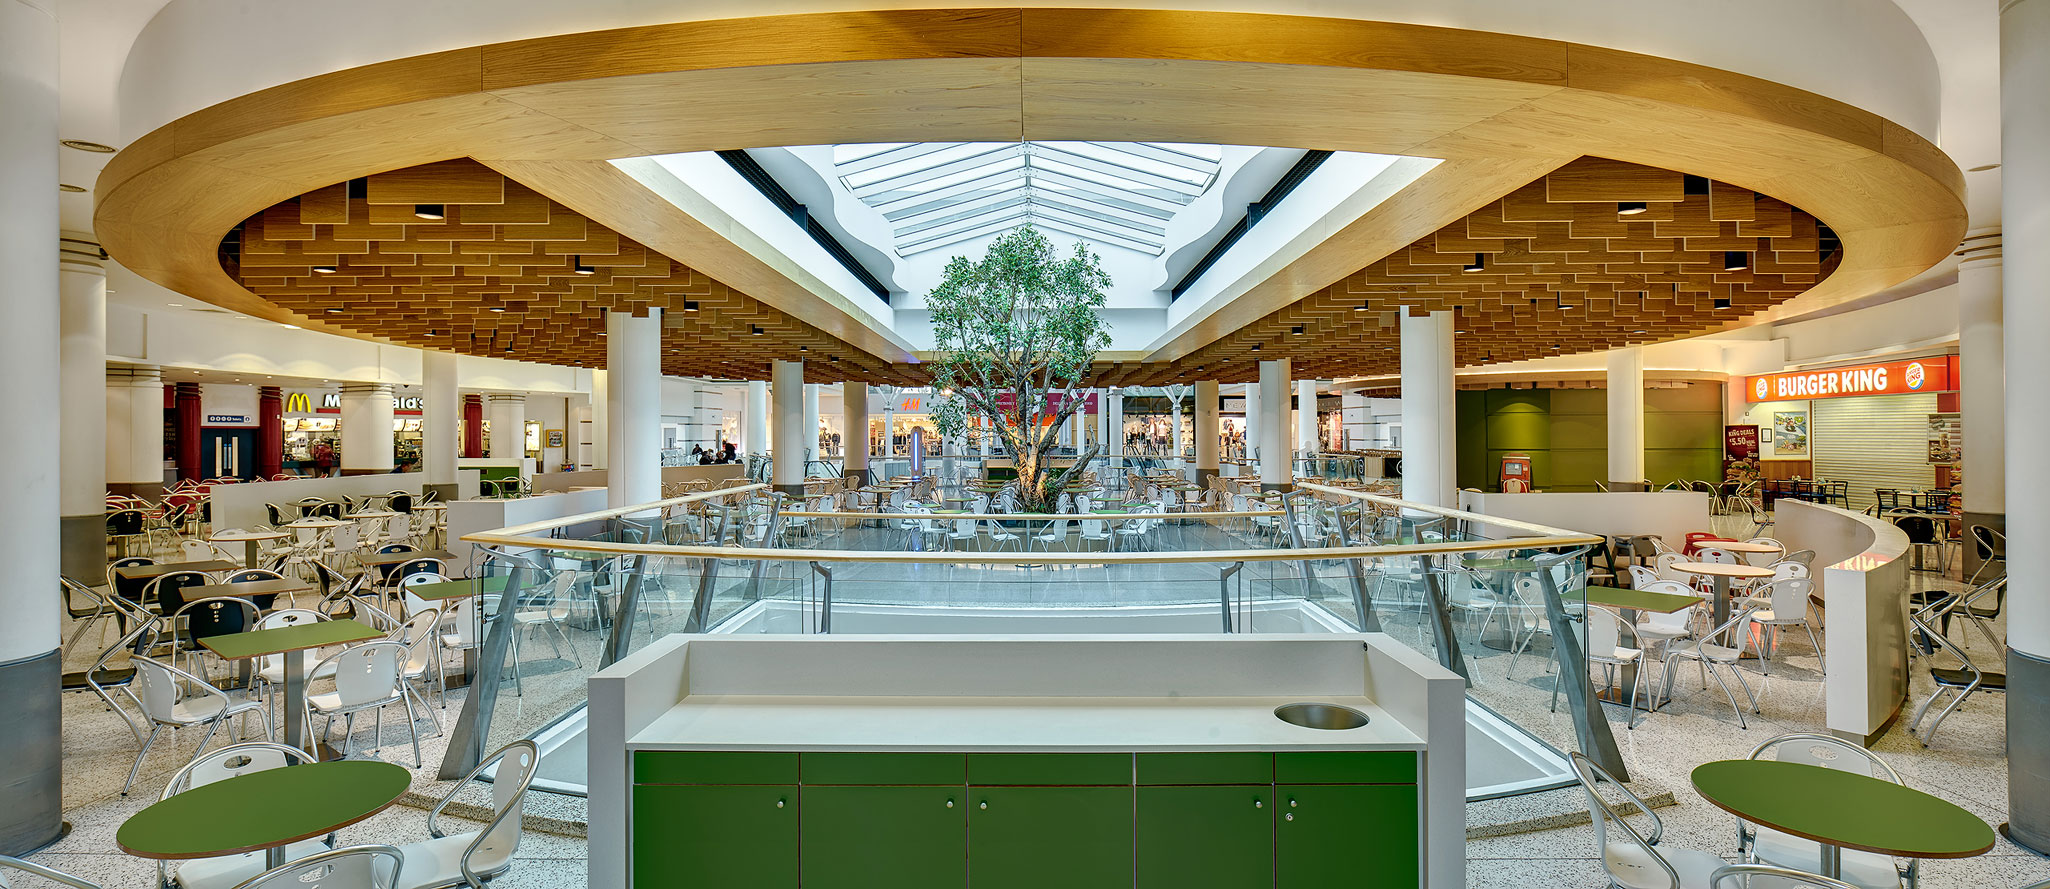 ECO-149-Liffey-Valley-Food-Court-liffey-valley-shopping-centre-1.jpg